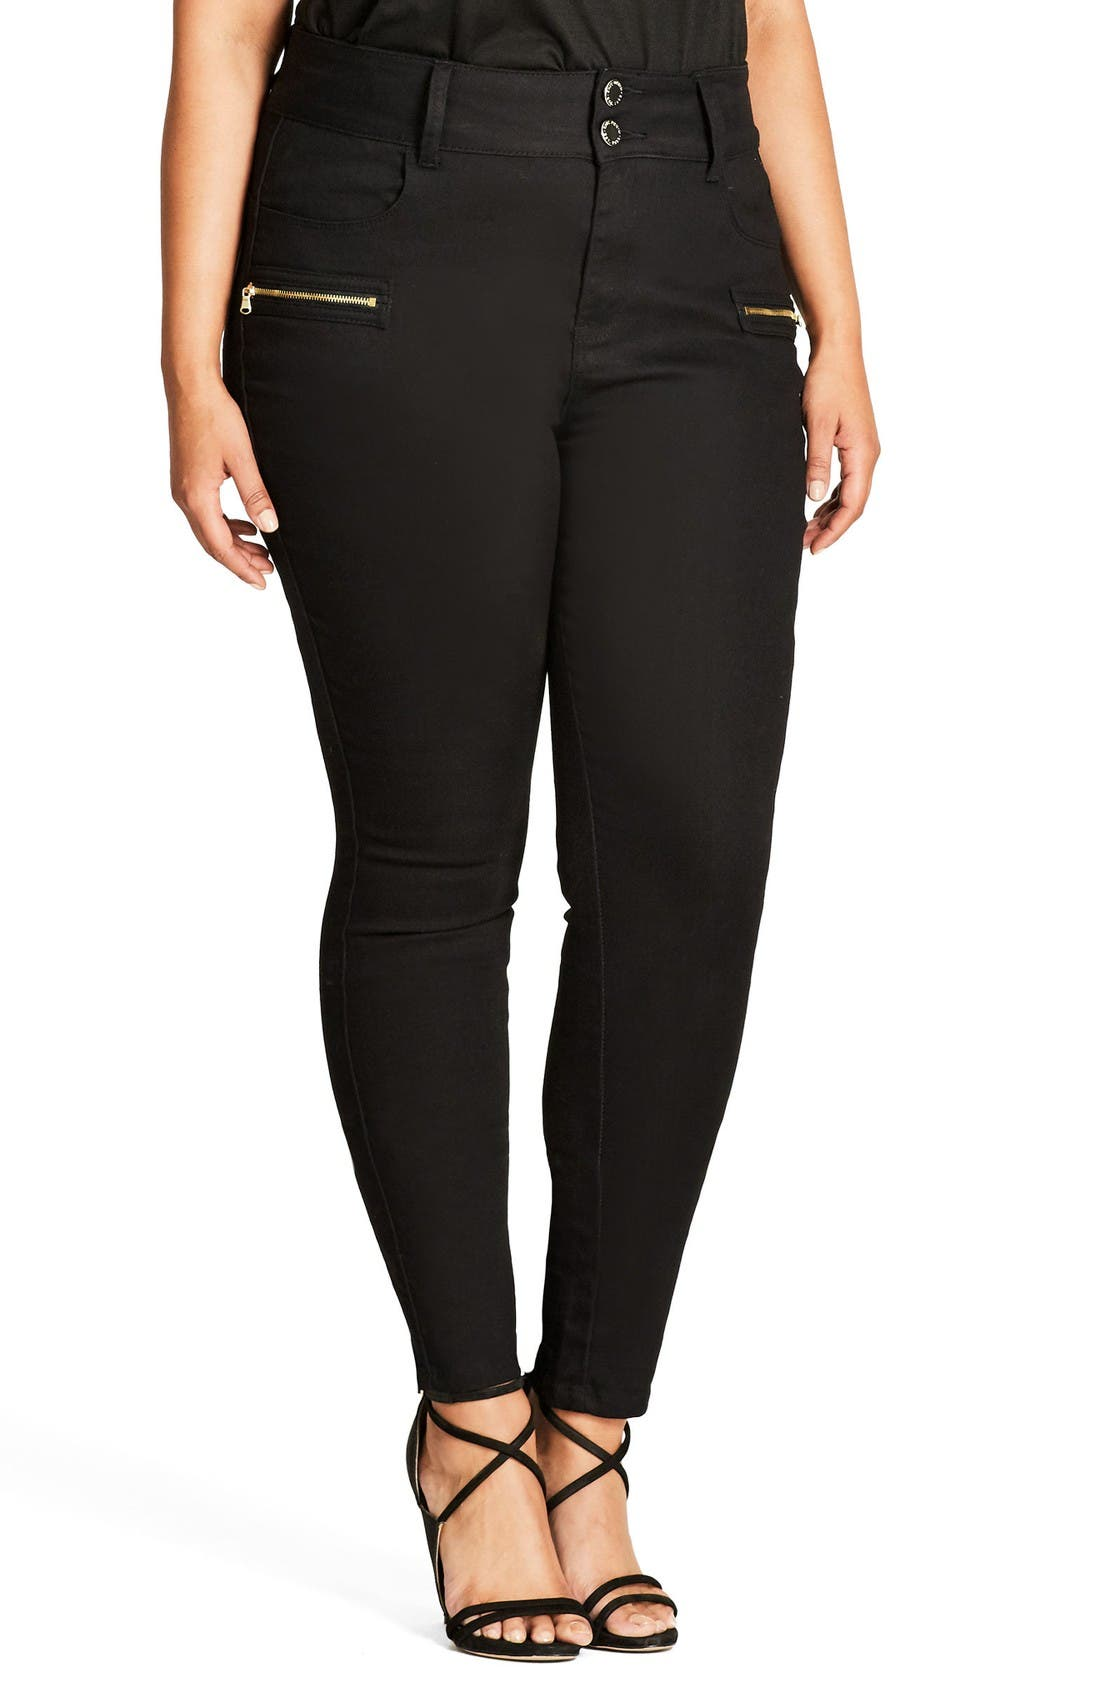 Main Image - City Chic Jet Apple Stretch Skinny Jeans (Plus Size)